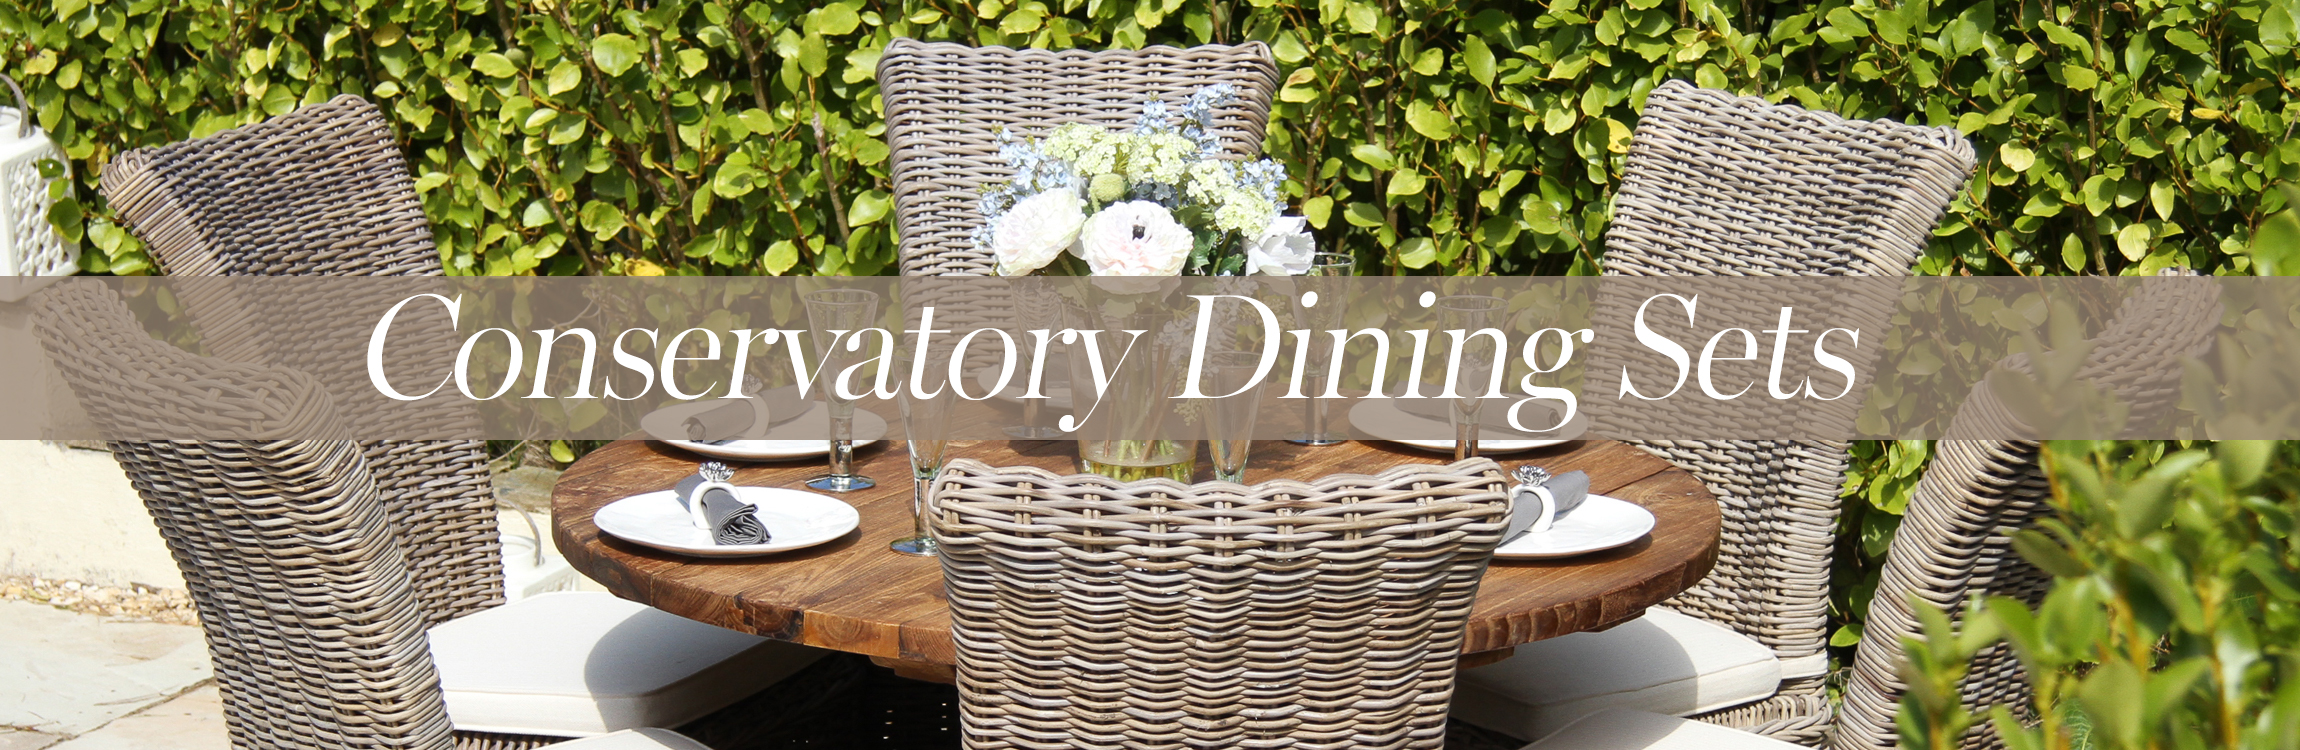 Conservatory Dining Sets